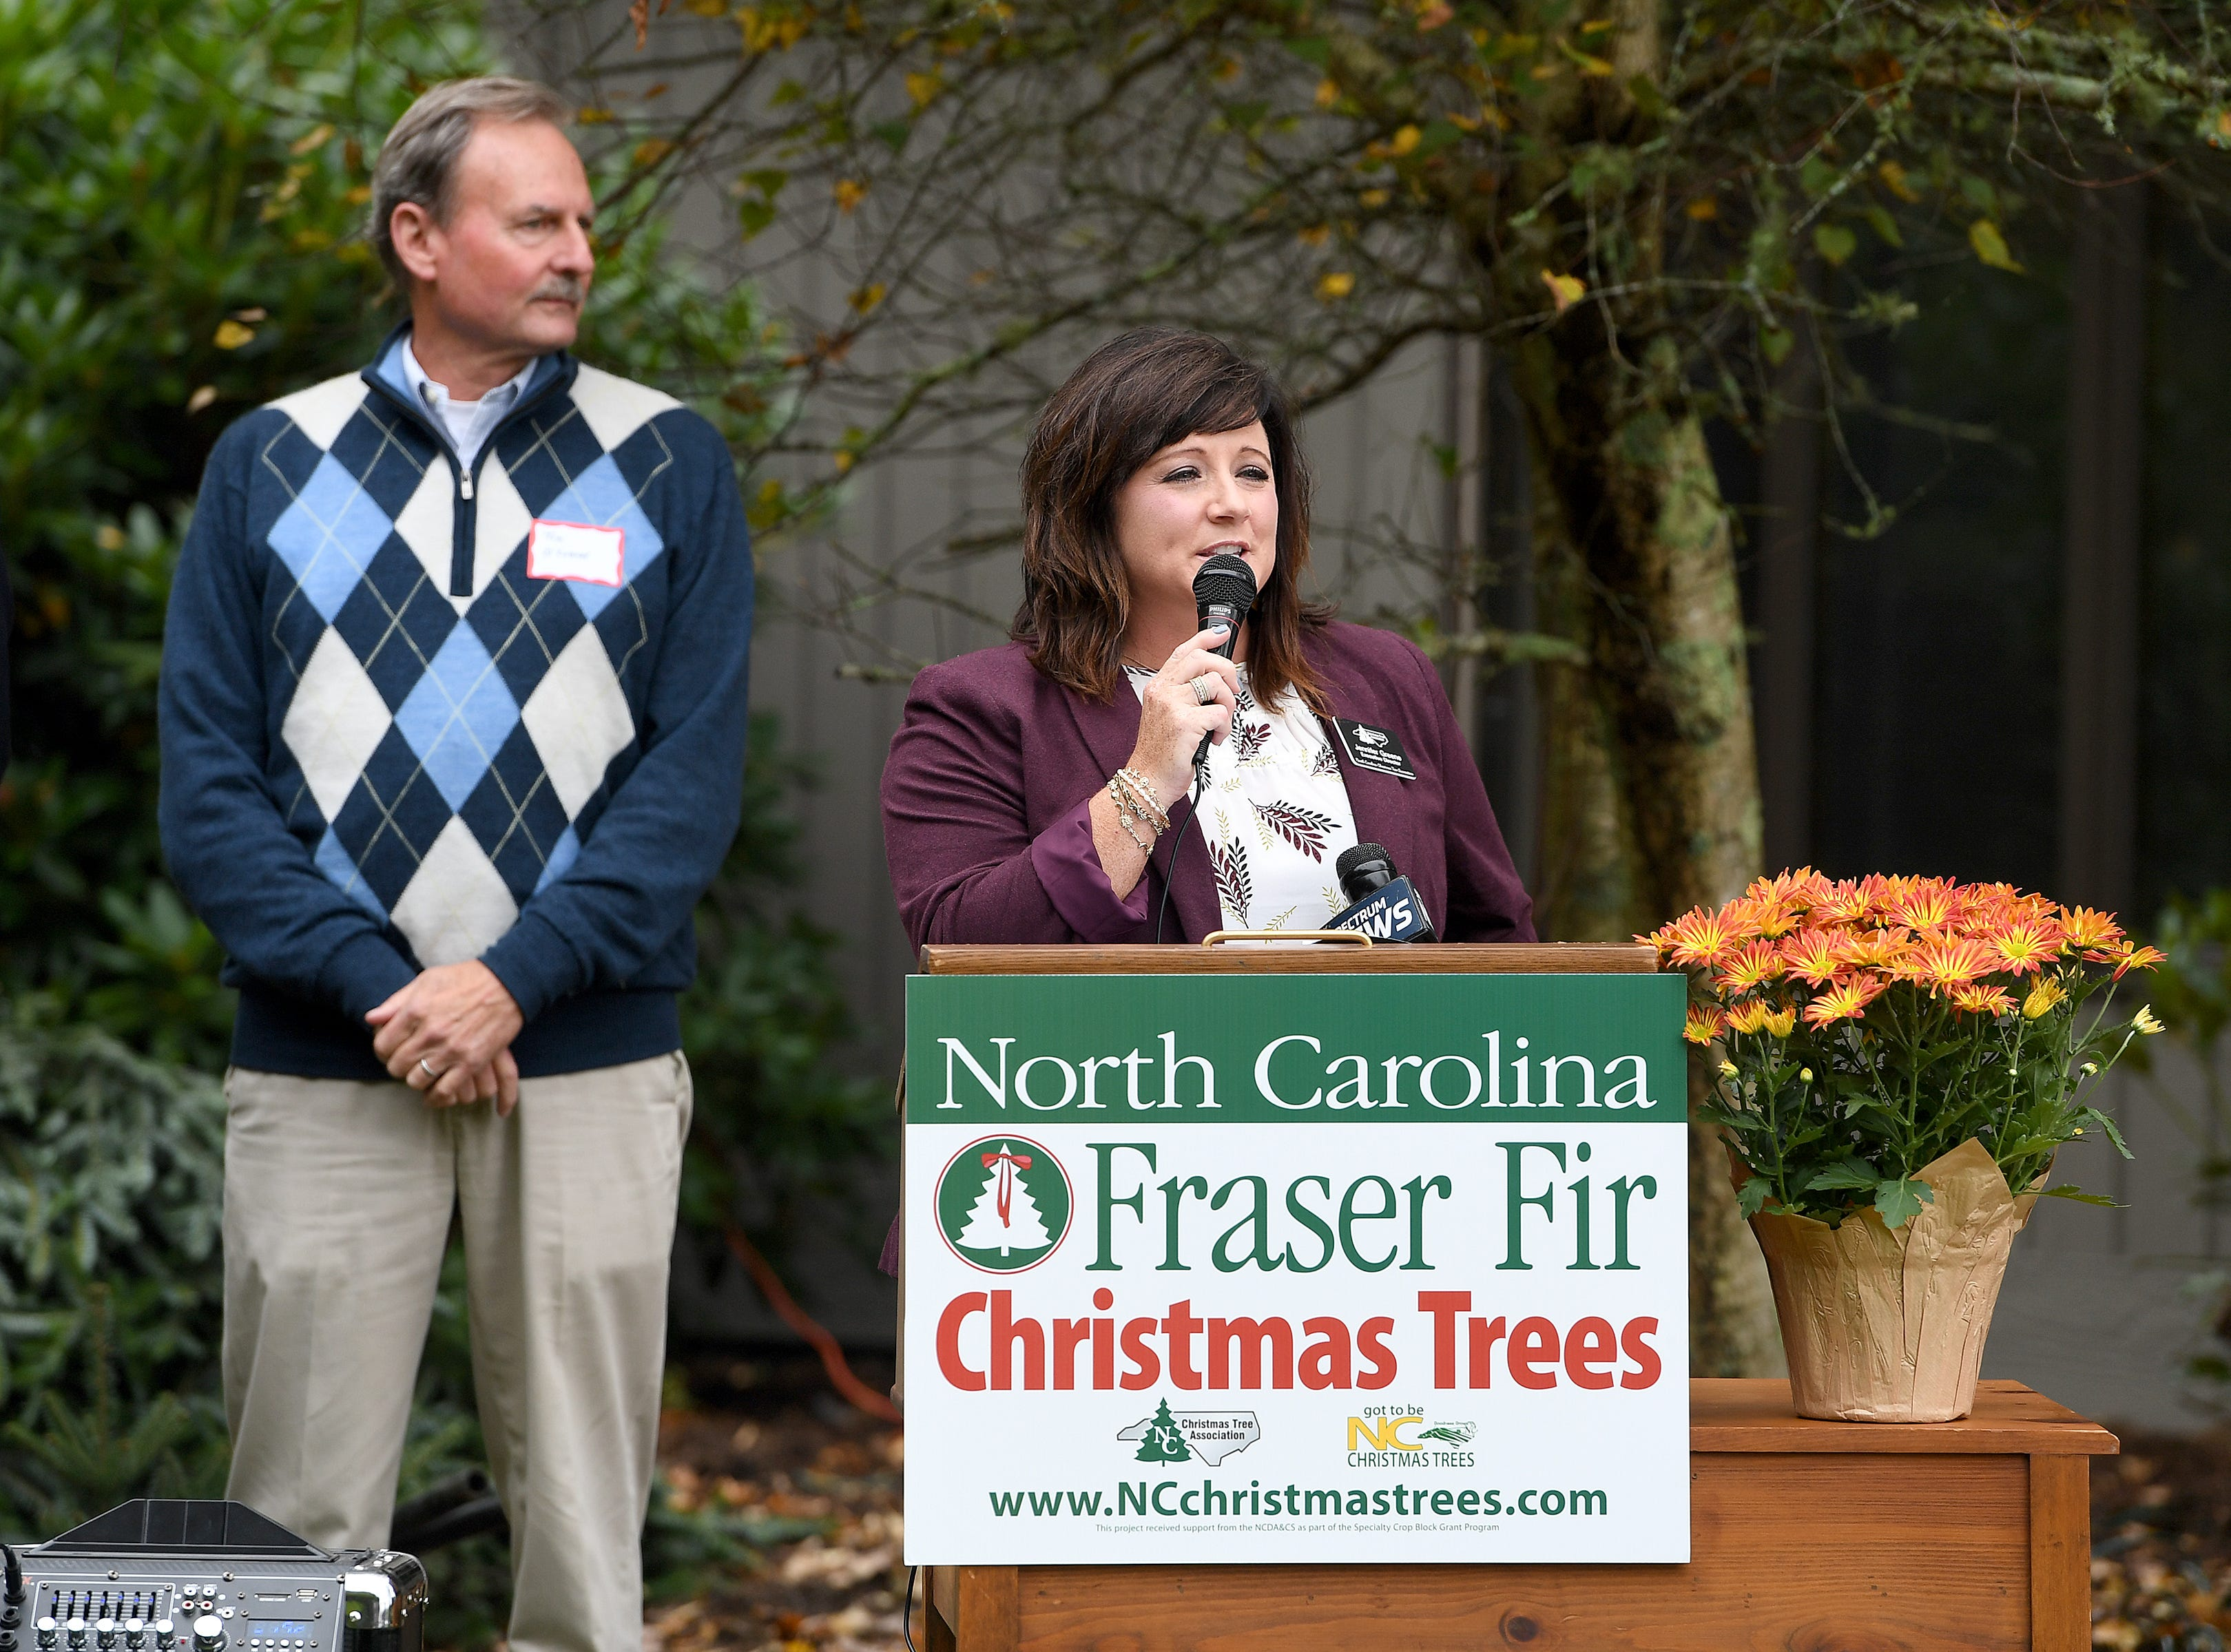 Jennifer Greene, executive director of the North Carolina Christmas Tree Association, addresses the crowd during an event at Mountain Top Fraser Fir in Newland on Sept. 24, 2018. Larry Smith, owner of the farm, was named the Grand Champion in the National Christmas Tree Association's Christmas tree contest and with the title comes the honor of providing a tree to the White House to be displayed in the Blue Room during the Christmas season.